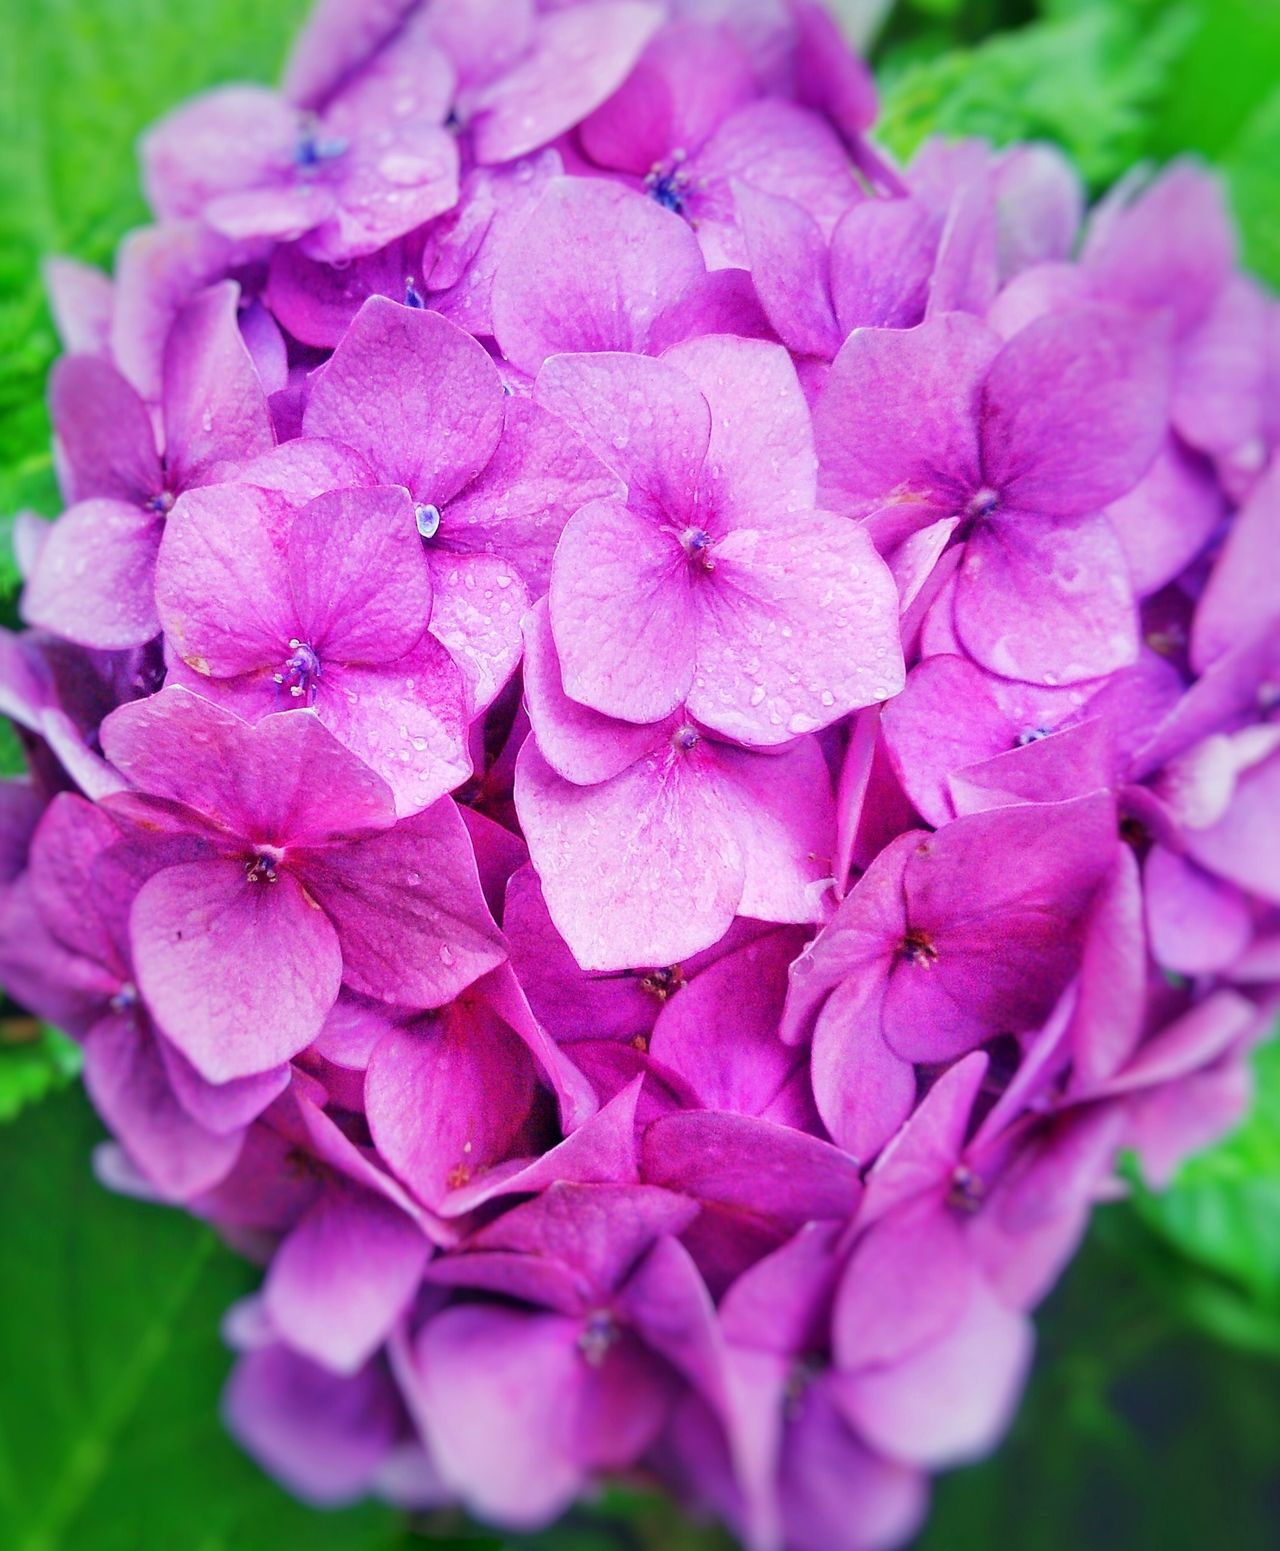 Flower Nature Plant Beauty In Nature No People Flower Head Purple Freshness Growth Pink Color Close-up Outdoors Day